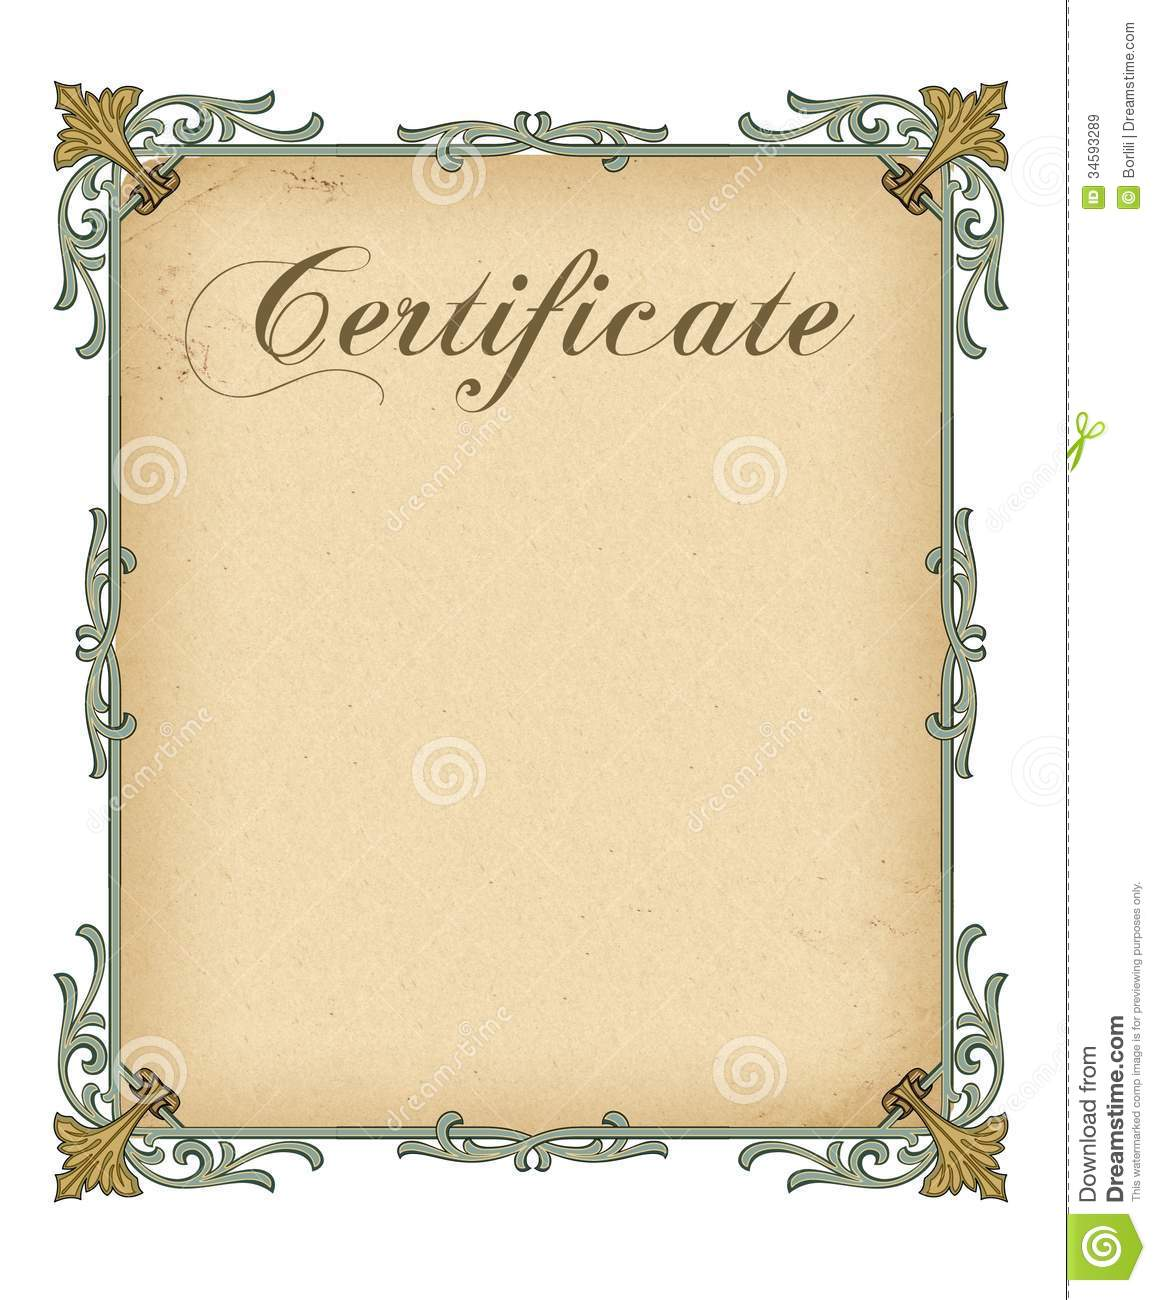 Blank certificate template stock illustration illustration of blank certificate template alramifo Image collections